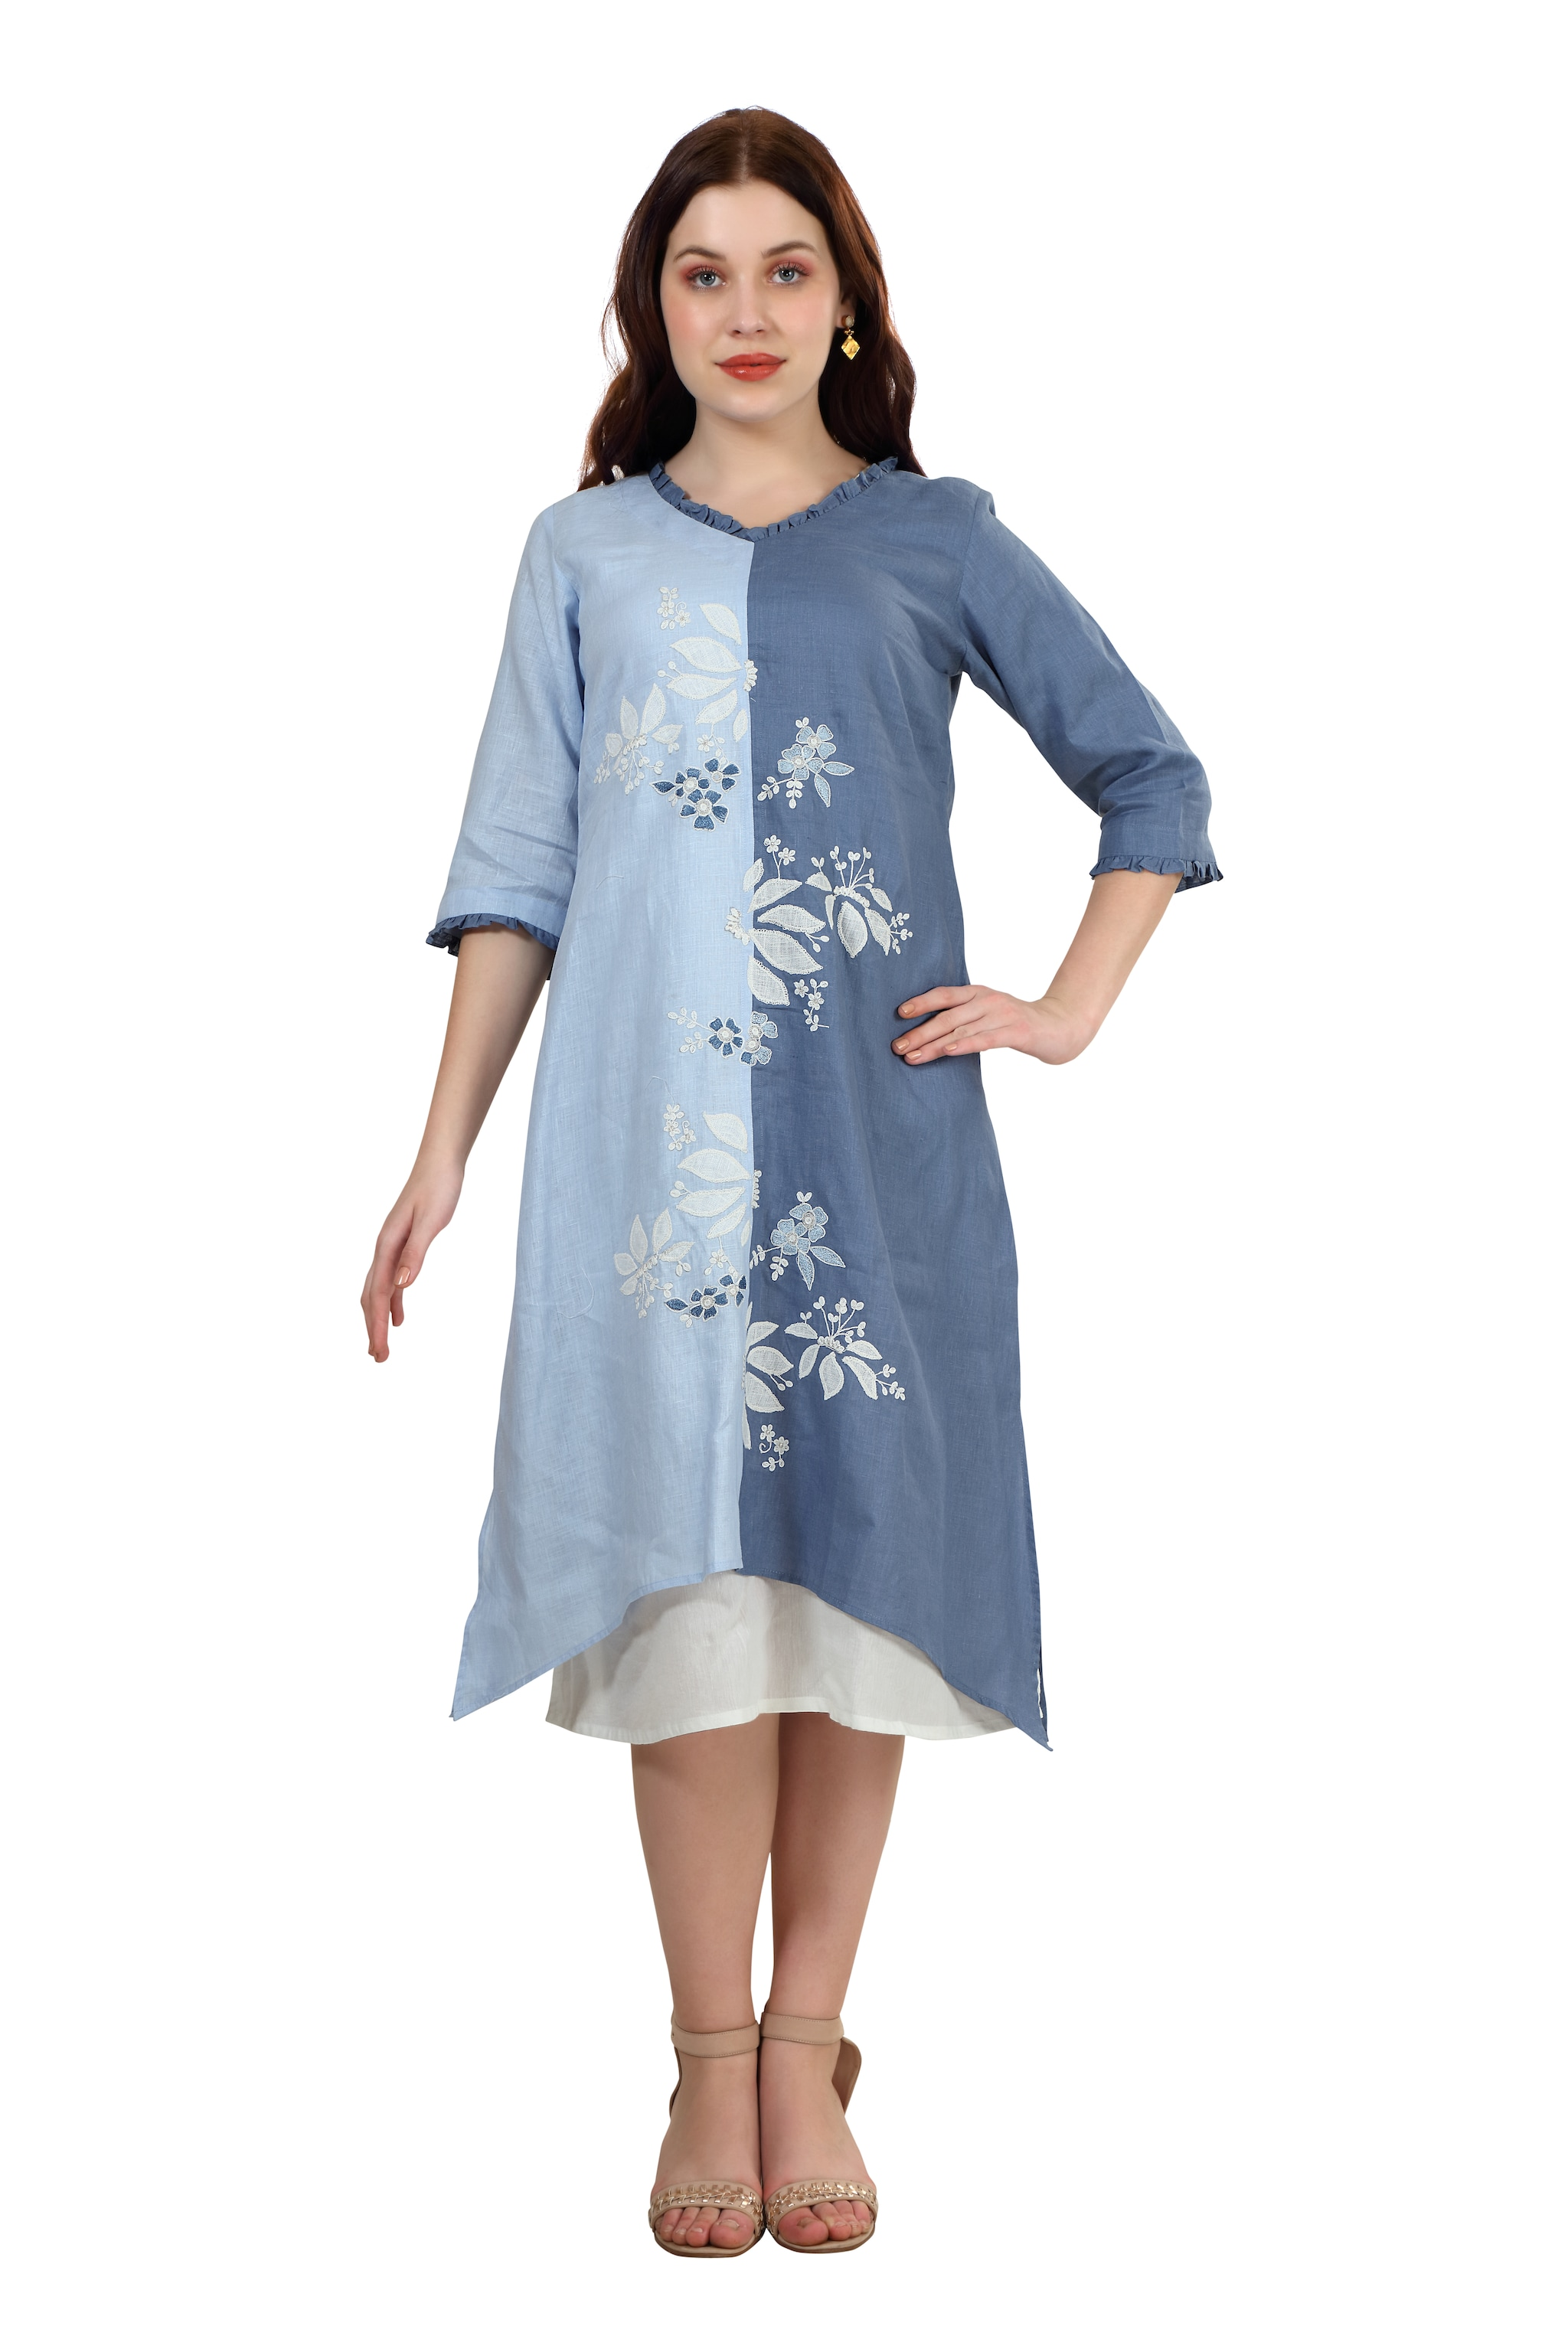 202031 Shades Of Blue Embroidered Linen Dress (XS,Blue)